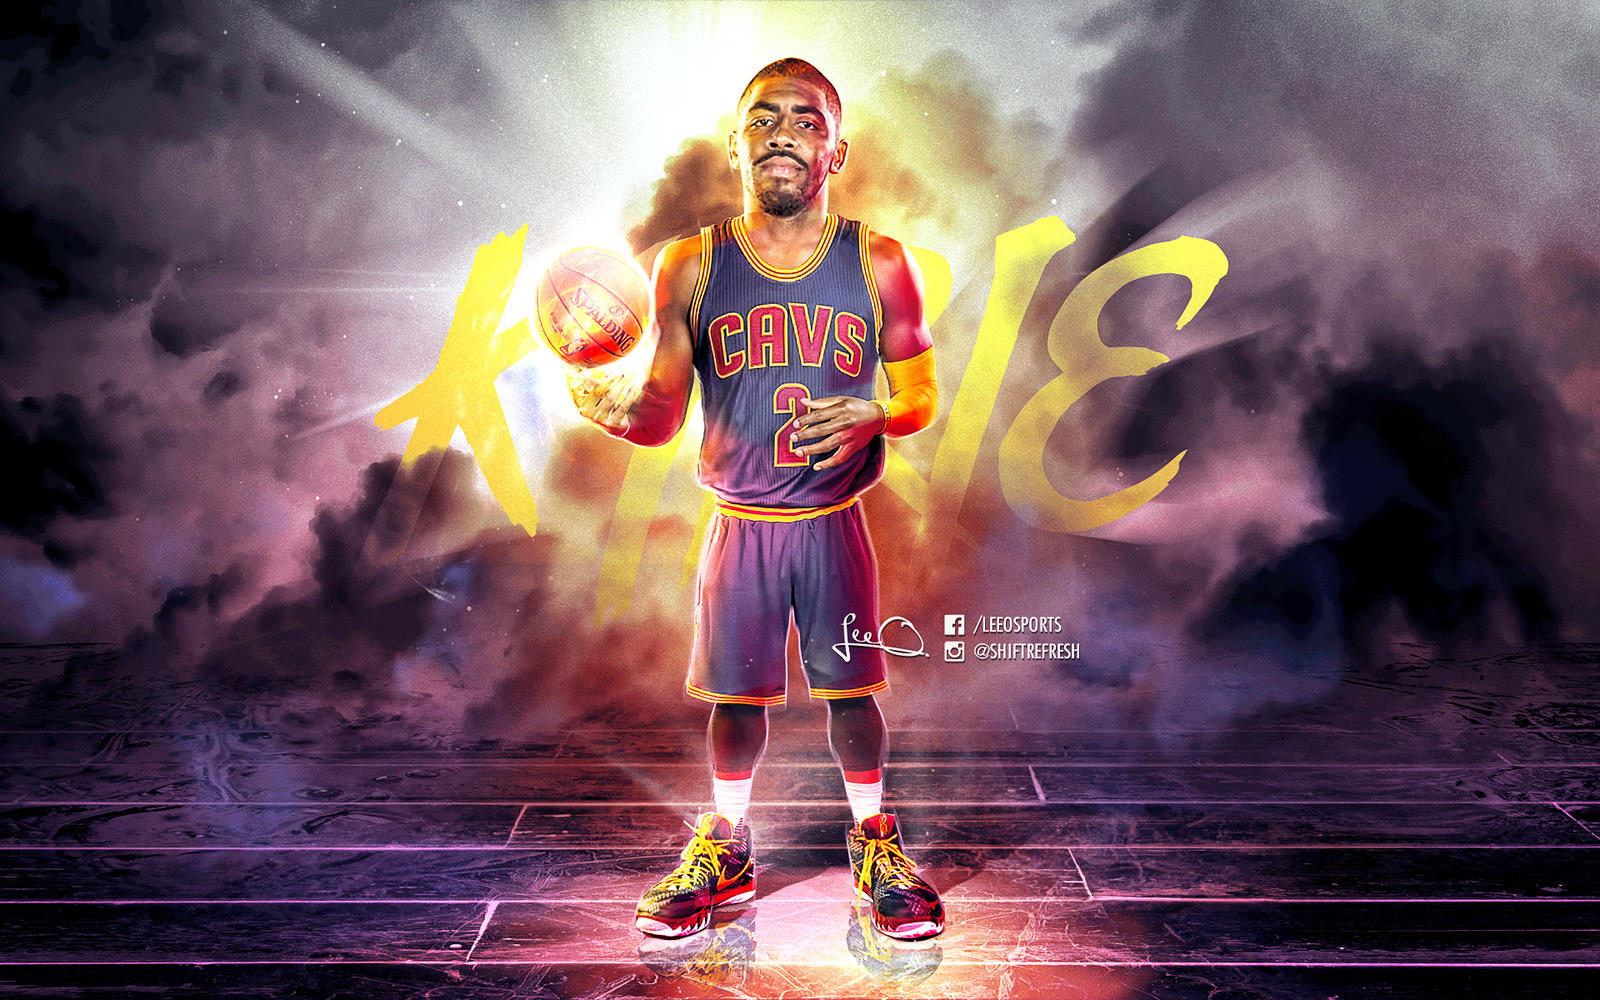 kyrie irving nba wallpaper by skythlee on deviantart